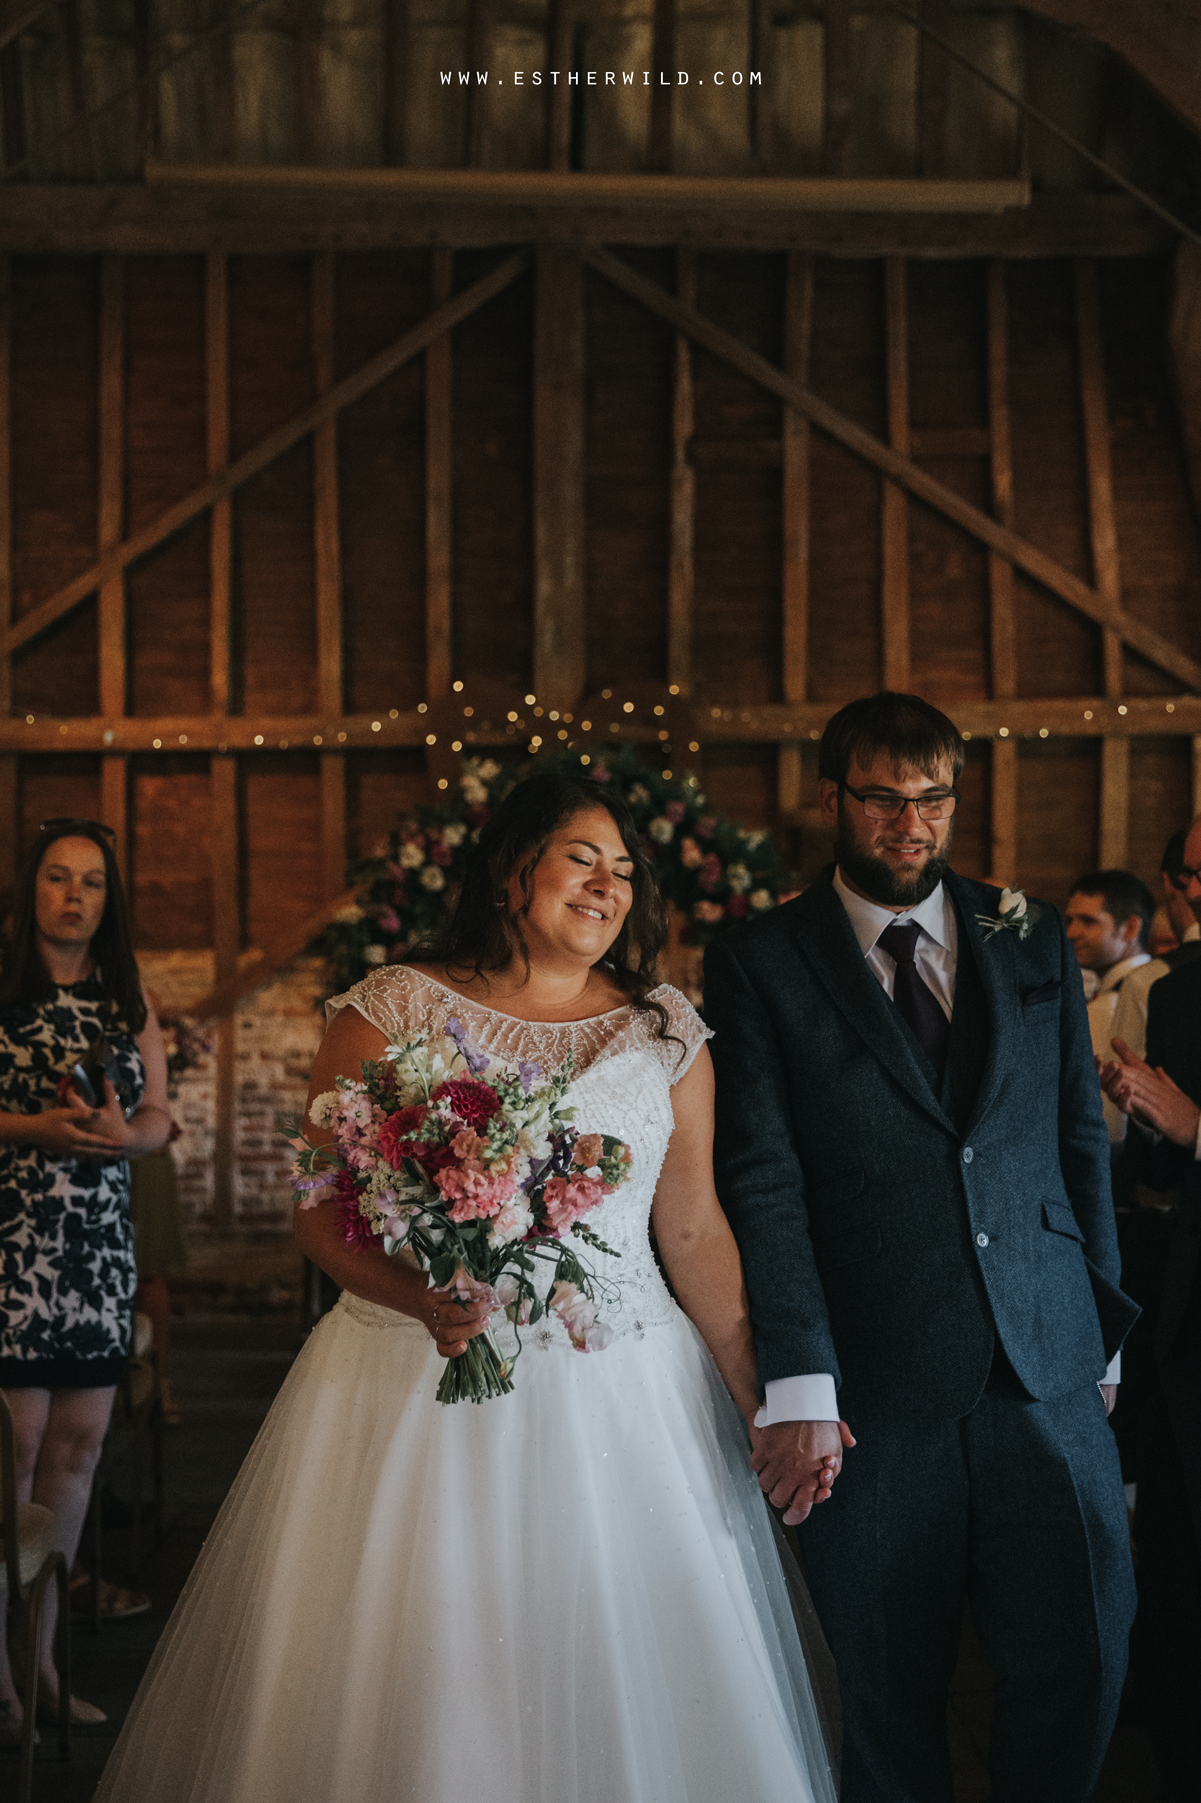 The_Red_Barn_Wedding_Kings_Lynn_Norfolk_IMG_1004.jpg